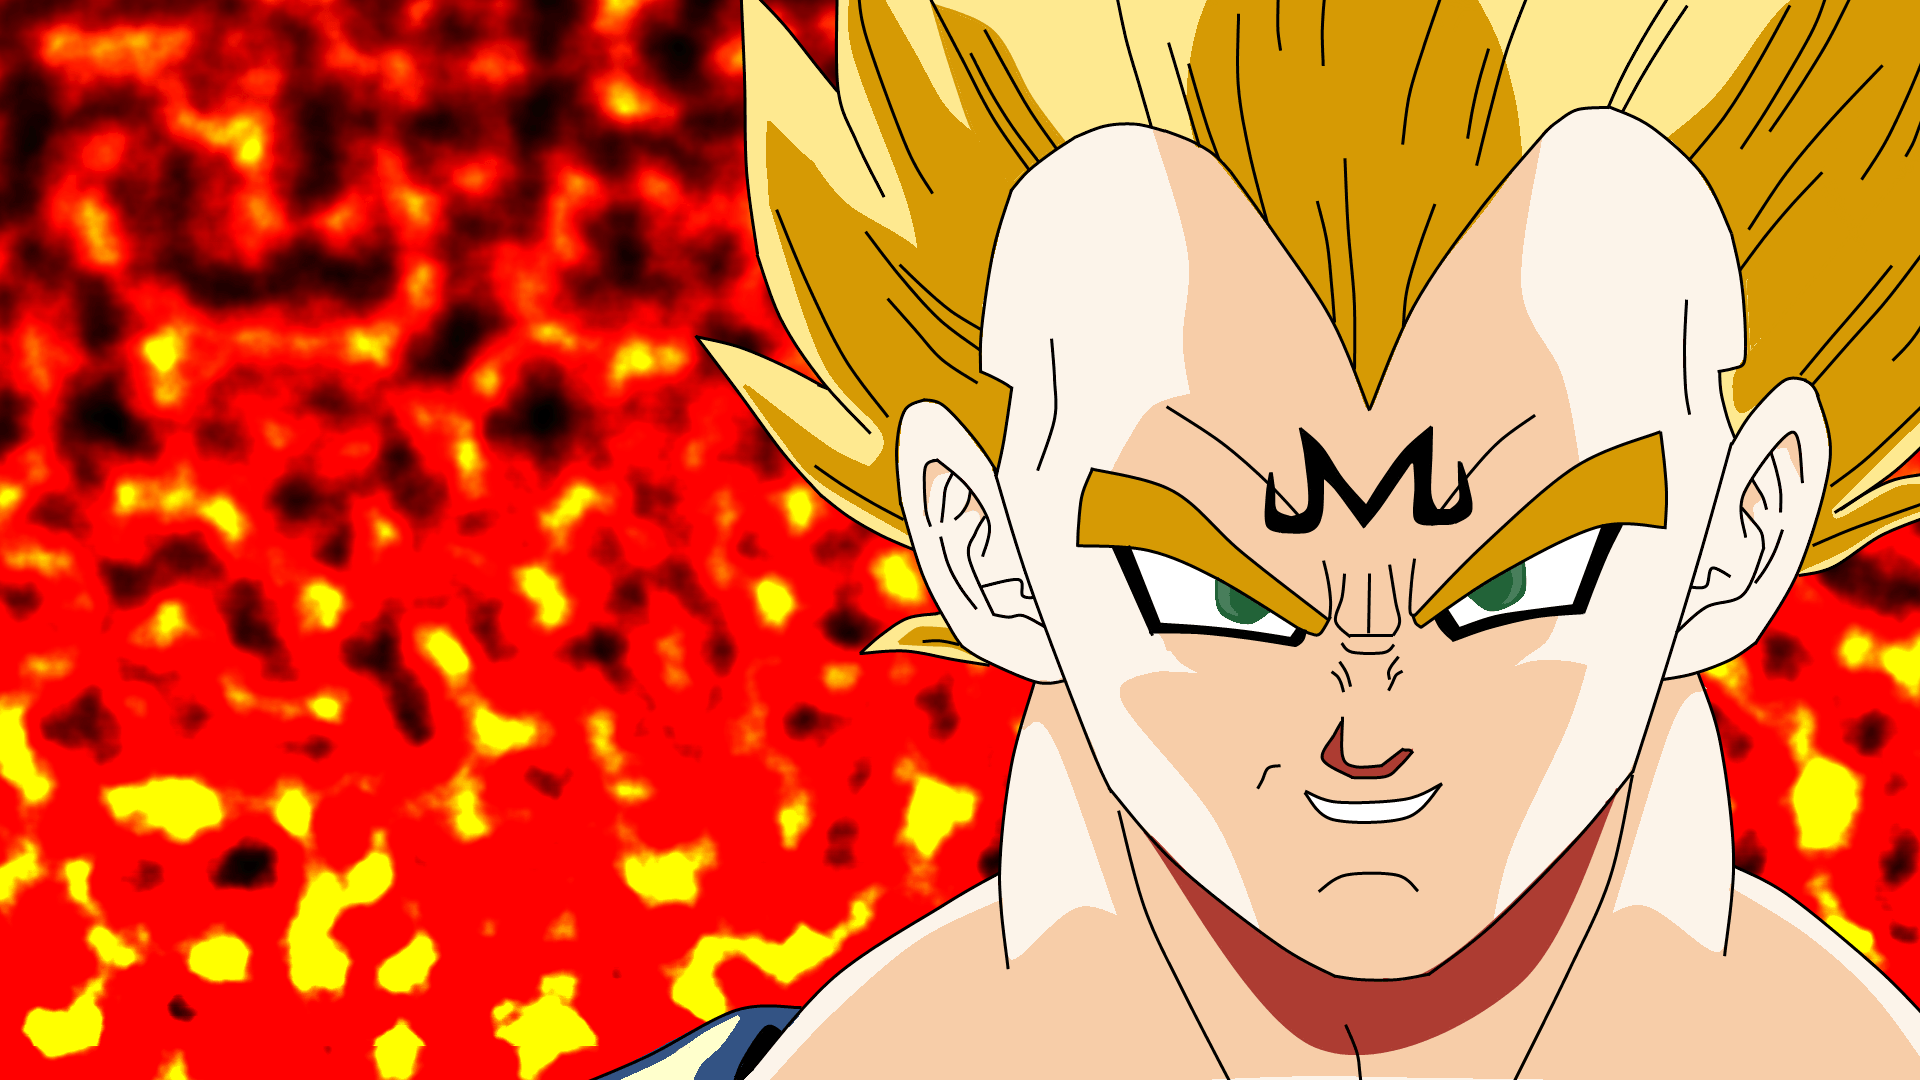 Majin Vegeta WallPaper 1080P HD By MasSergio On DeviantArt